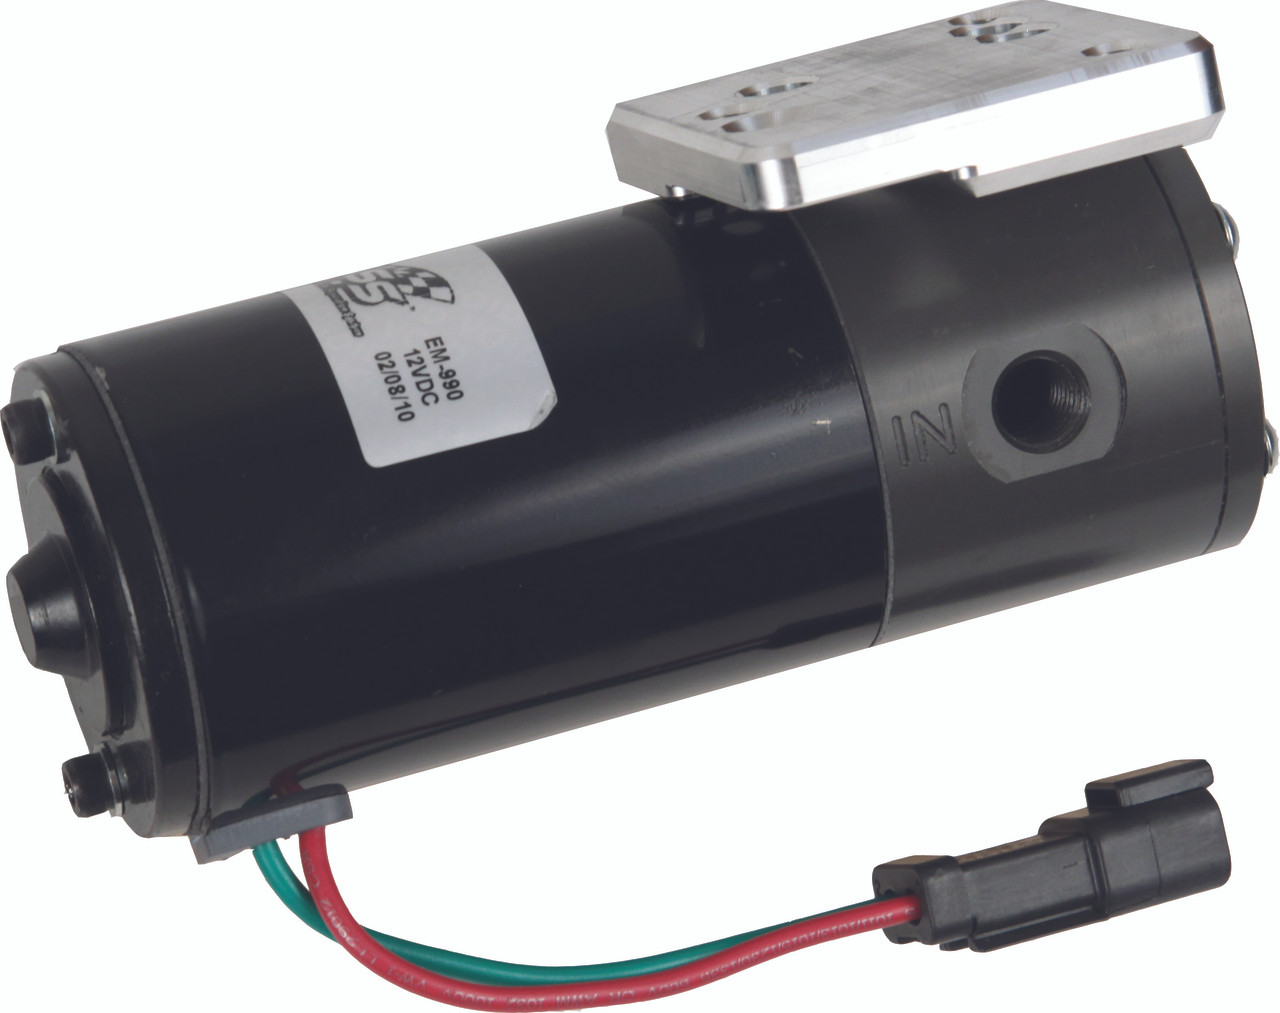 small resolution of dodge ram cummins drp series diesel fuel pump by fass fuel systems